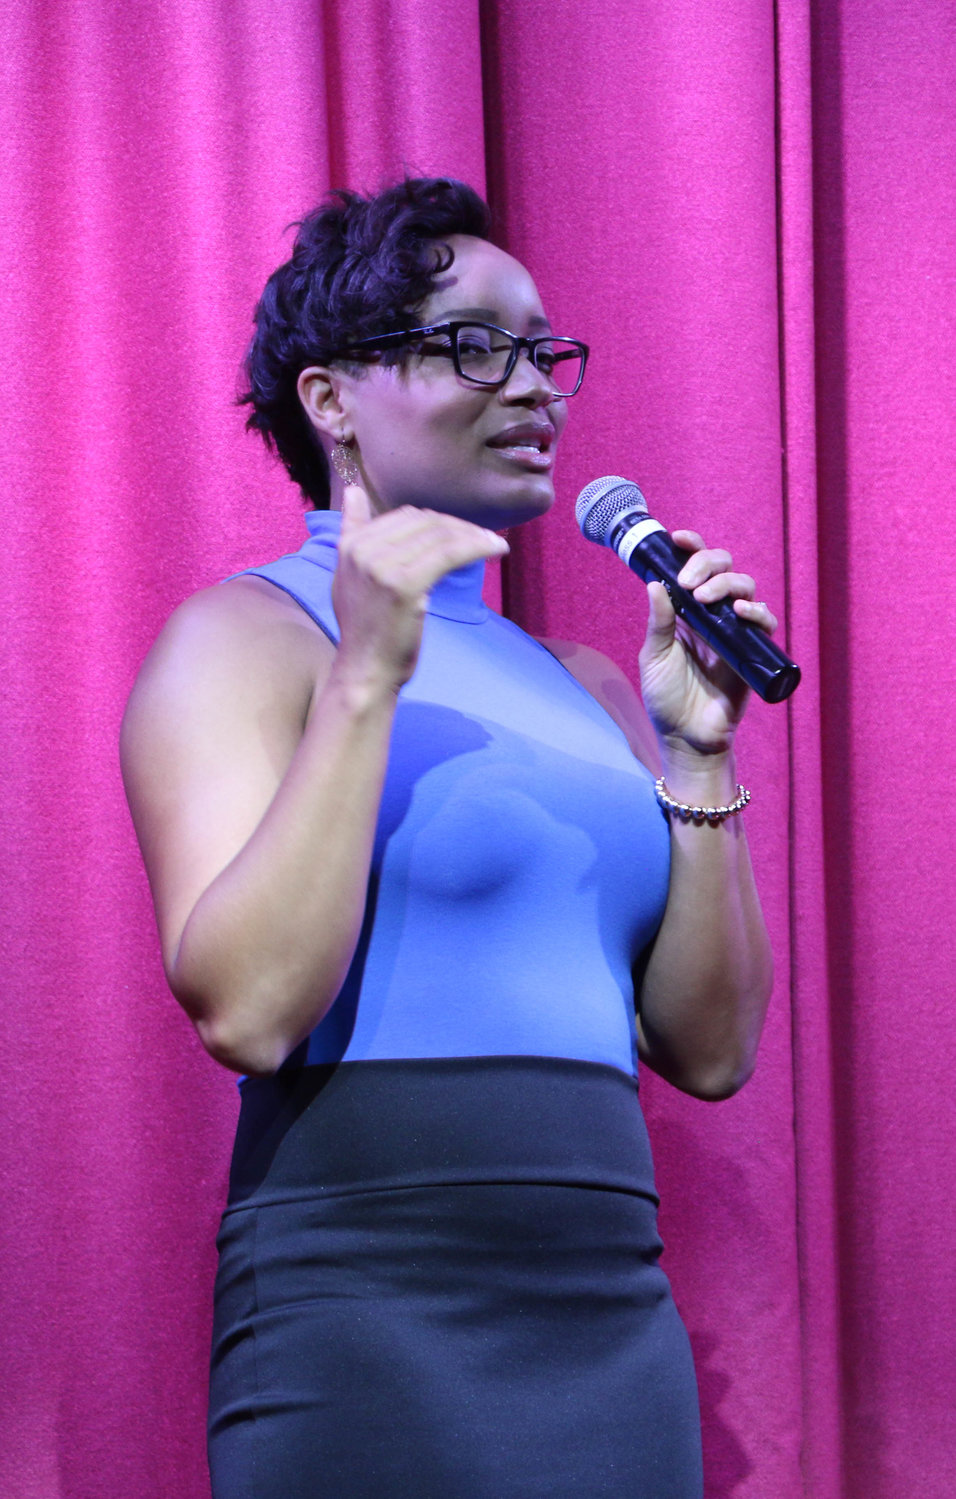 Tiffany Horton gave a speech about her journey and touched on the night's theme of women's empowerment.